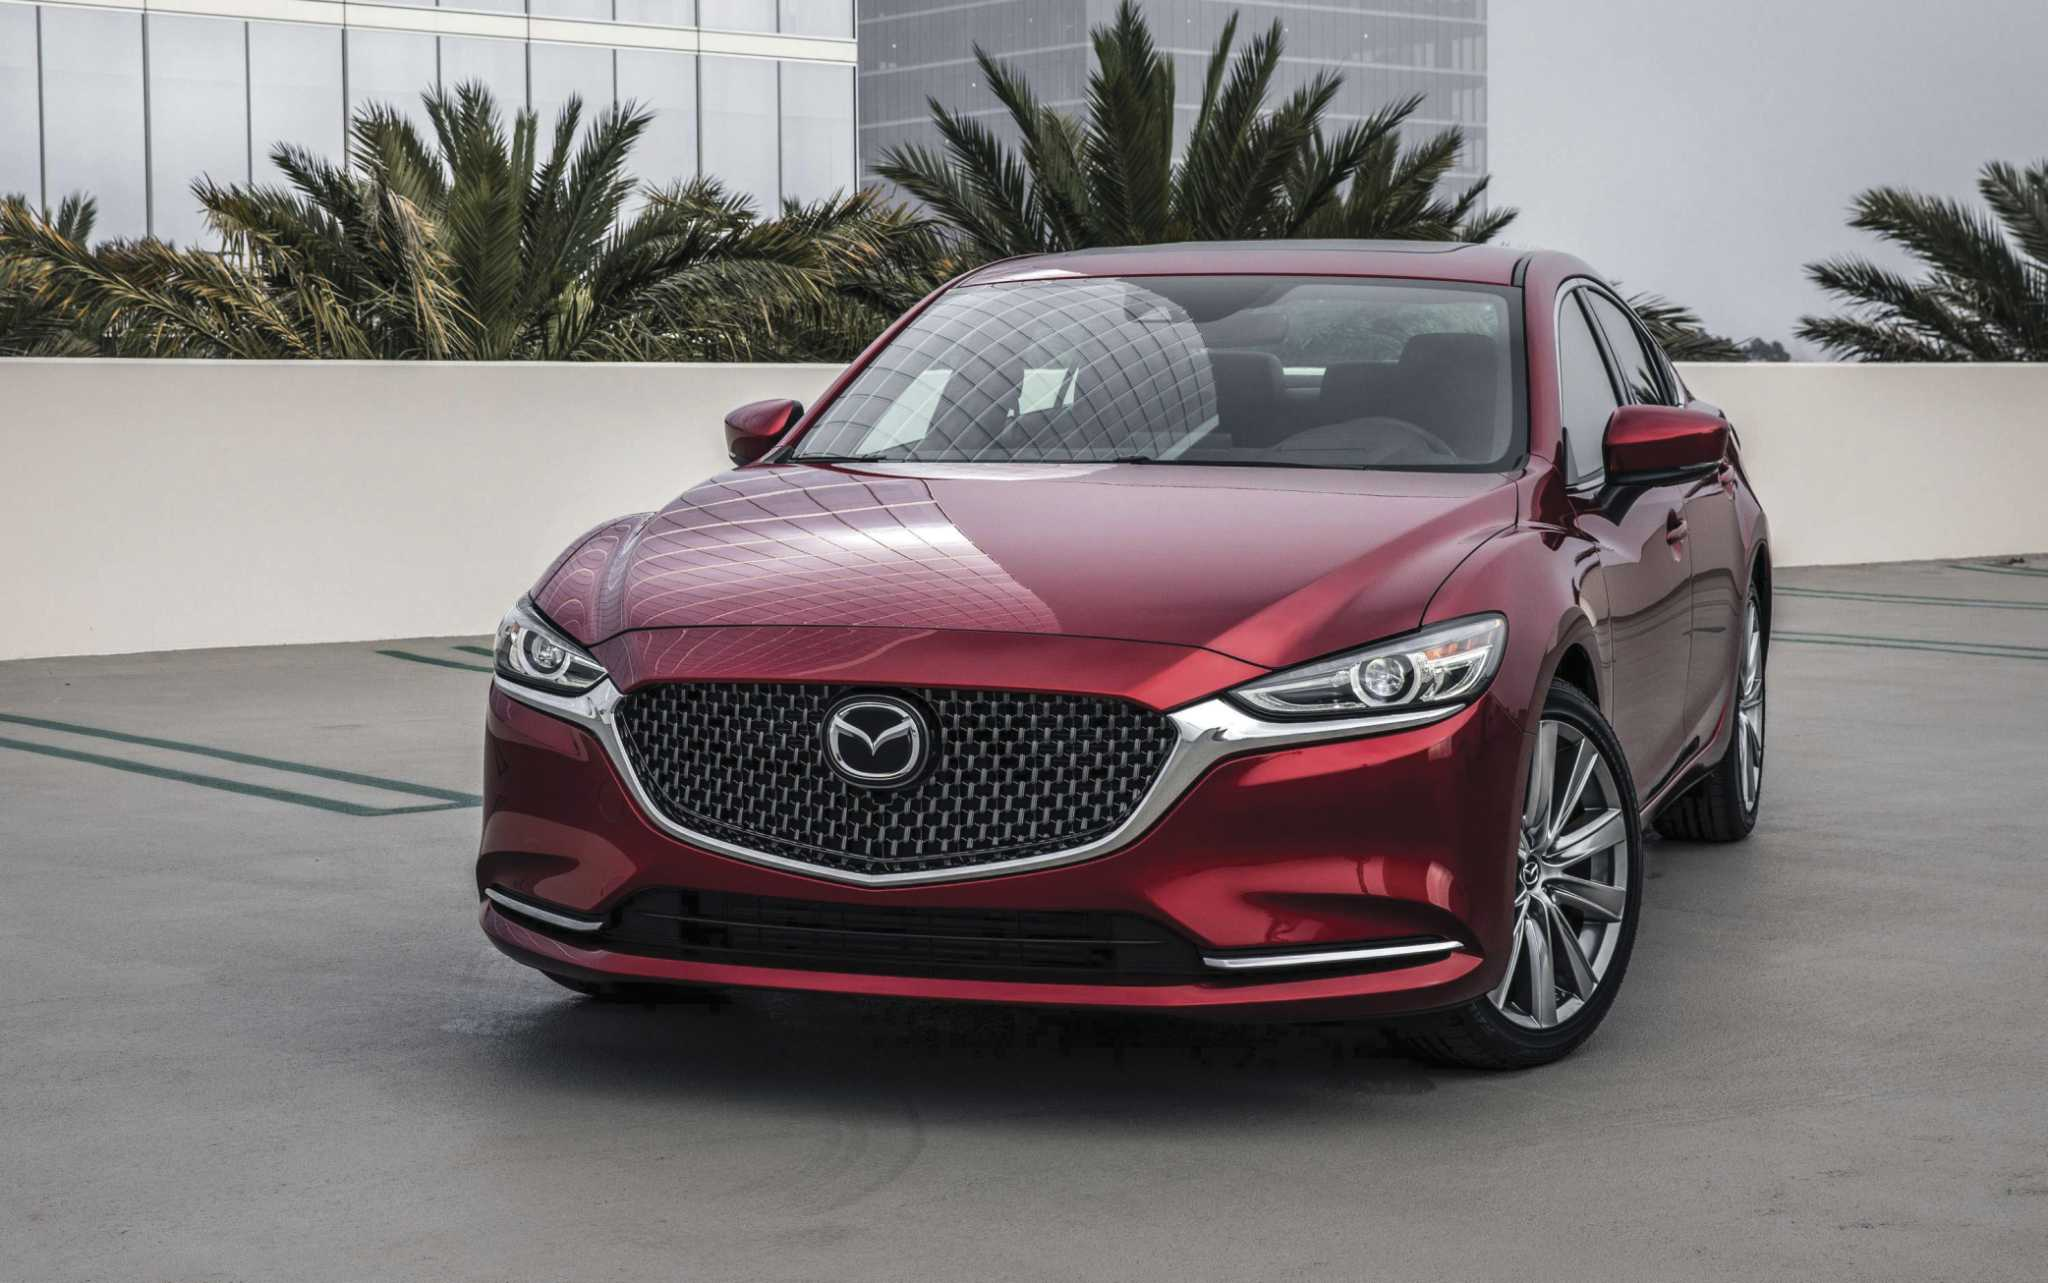 Mazda's refreshed midsize sedan offers more hustle, refinement